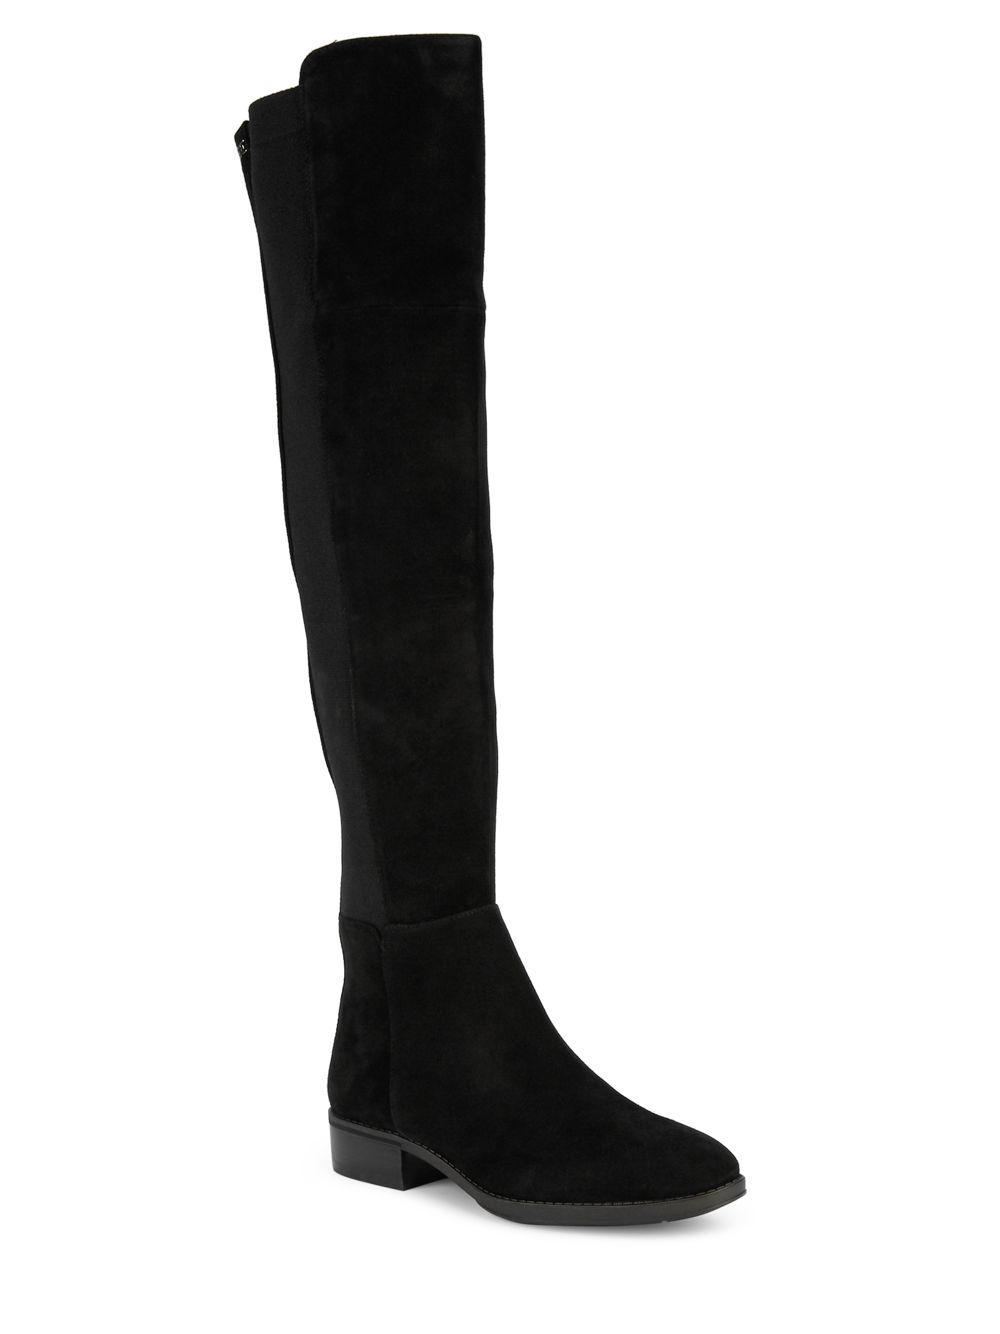 7bc4ea799ea Lyst - Sam Edelman Pam Over-the-knee Boots in Black - Save 14%